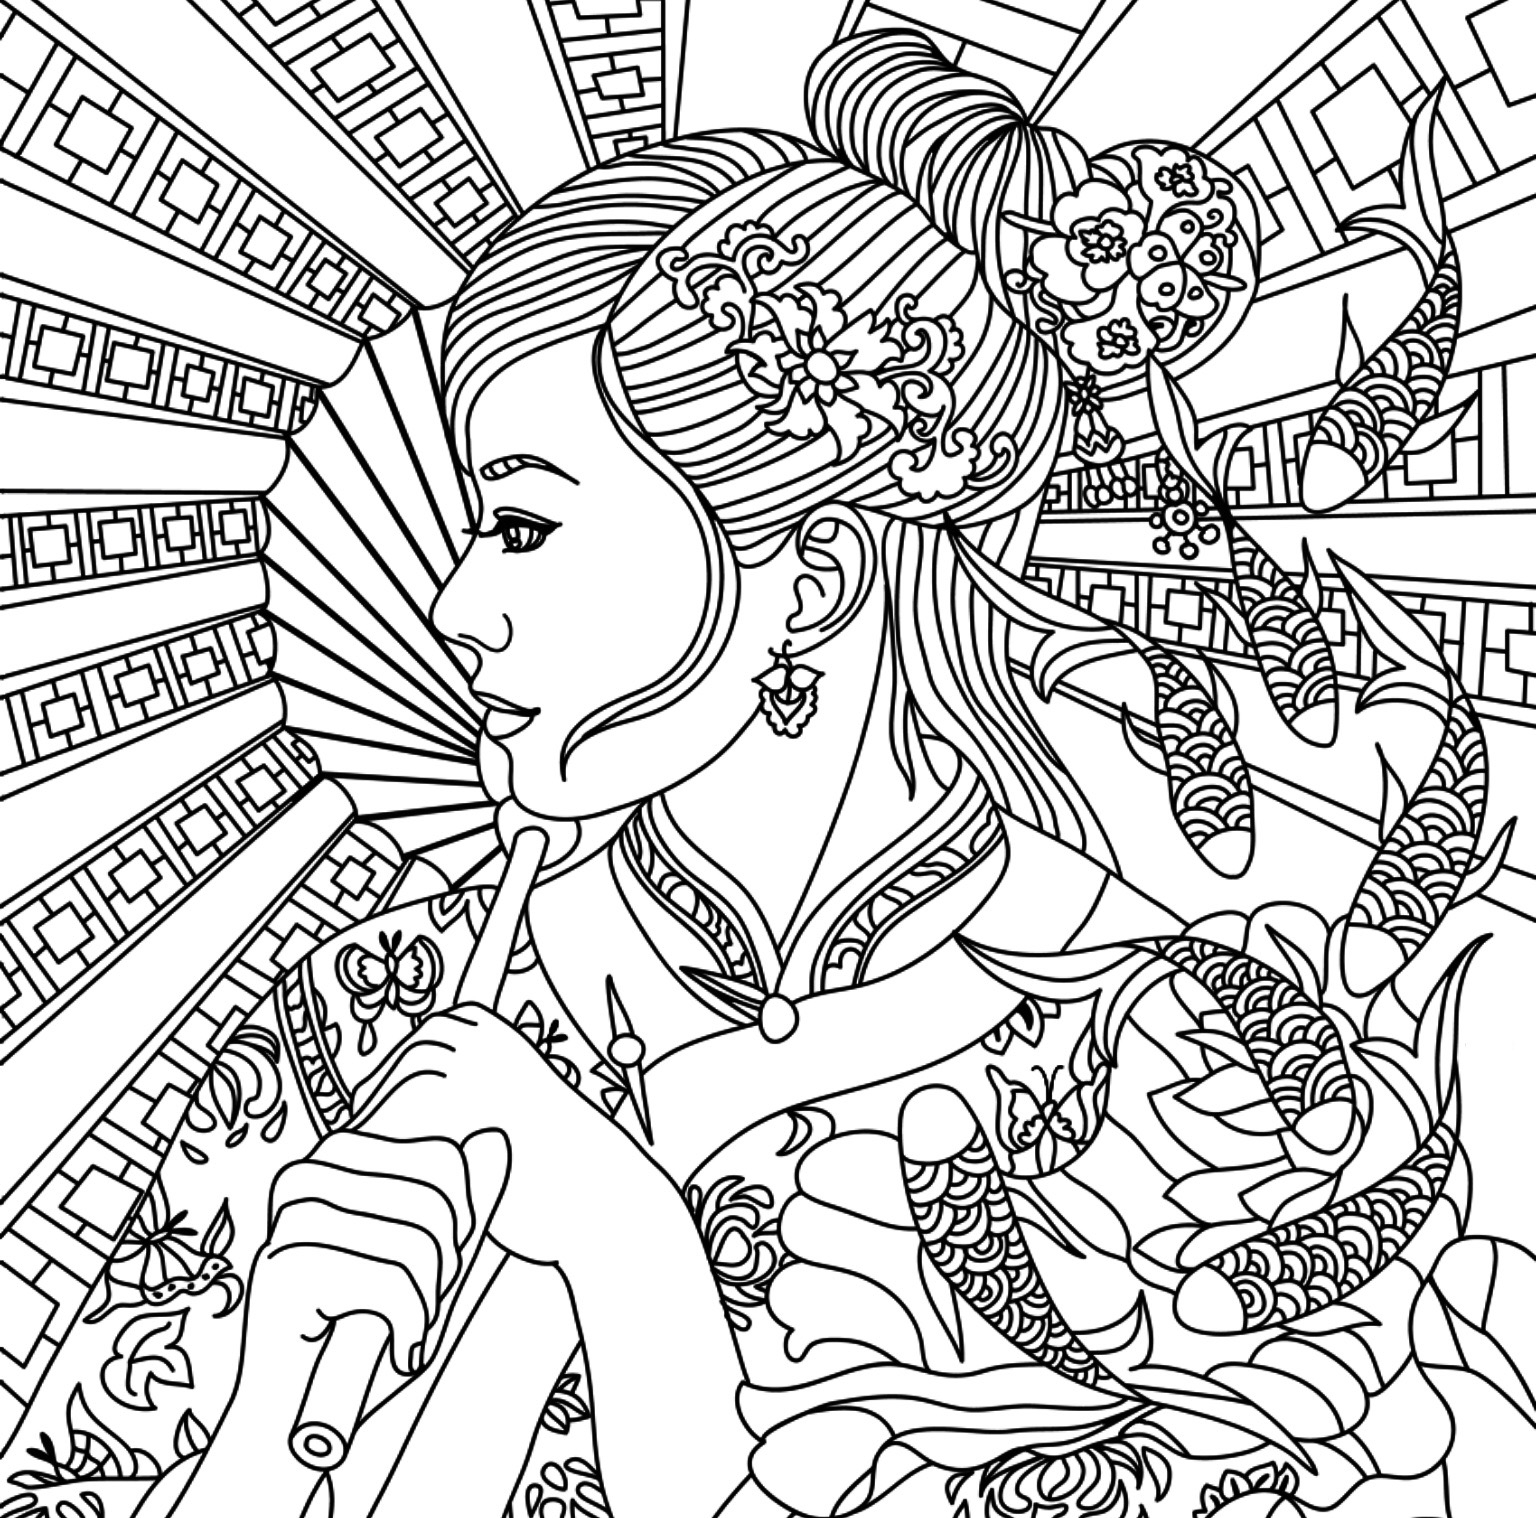 1536x1518 Shrewd Adult Coloring Pages Of People Thecolou